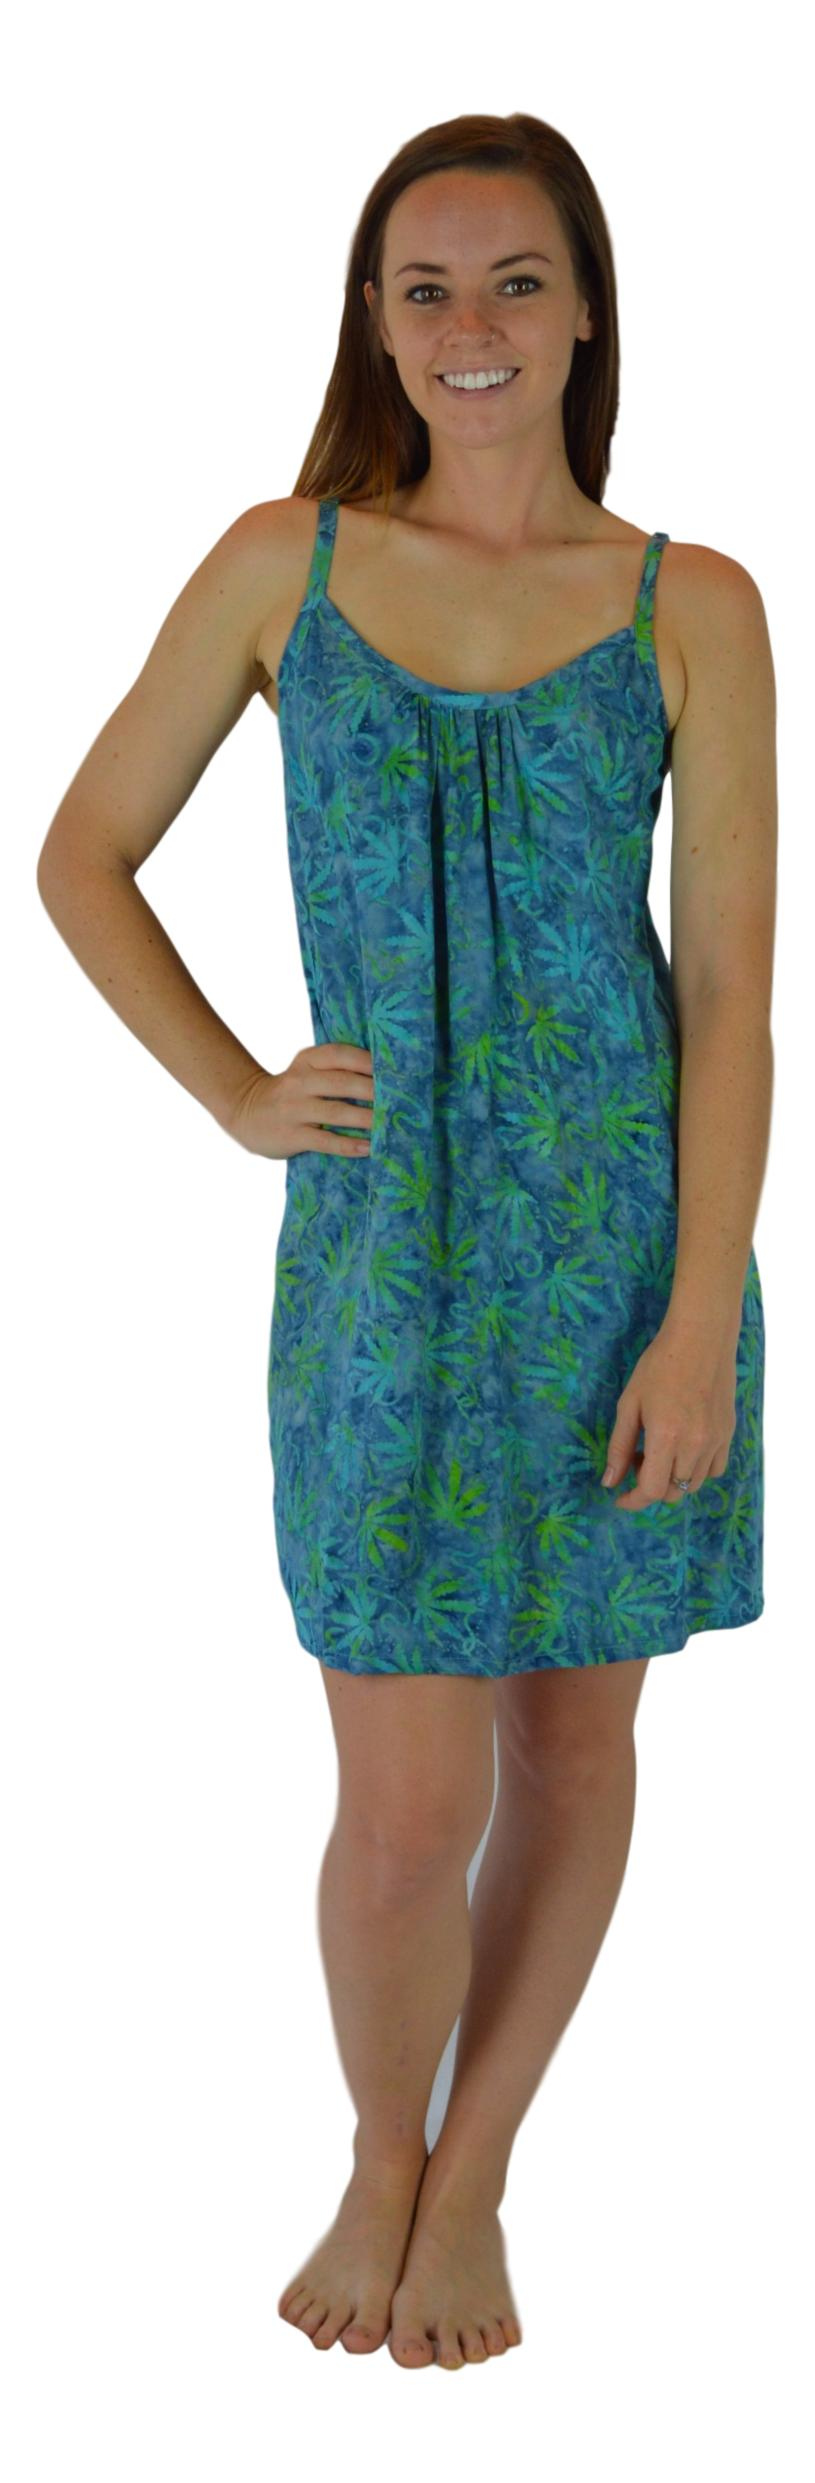 Aloha Royale - Short Bali Dress - Batik Ganja - Green